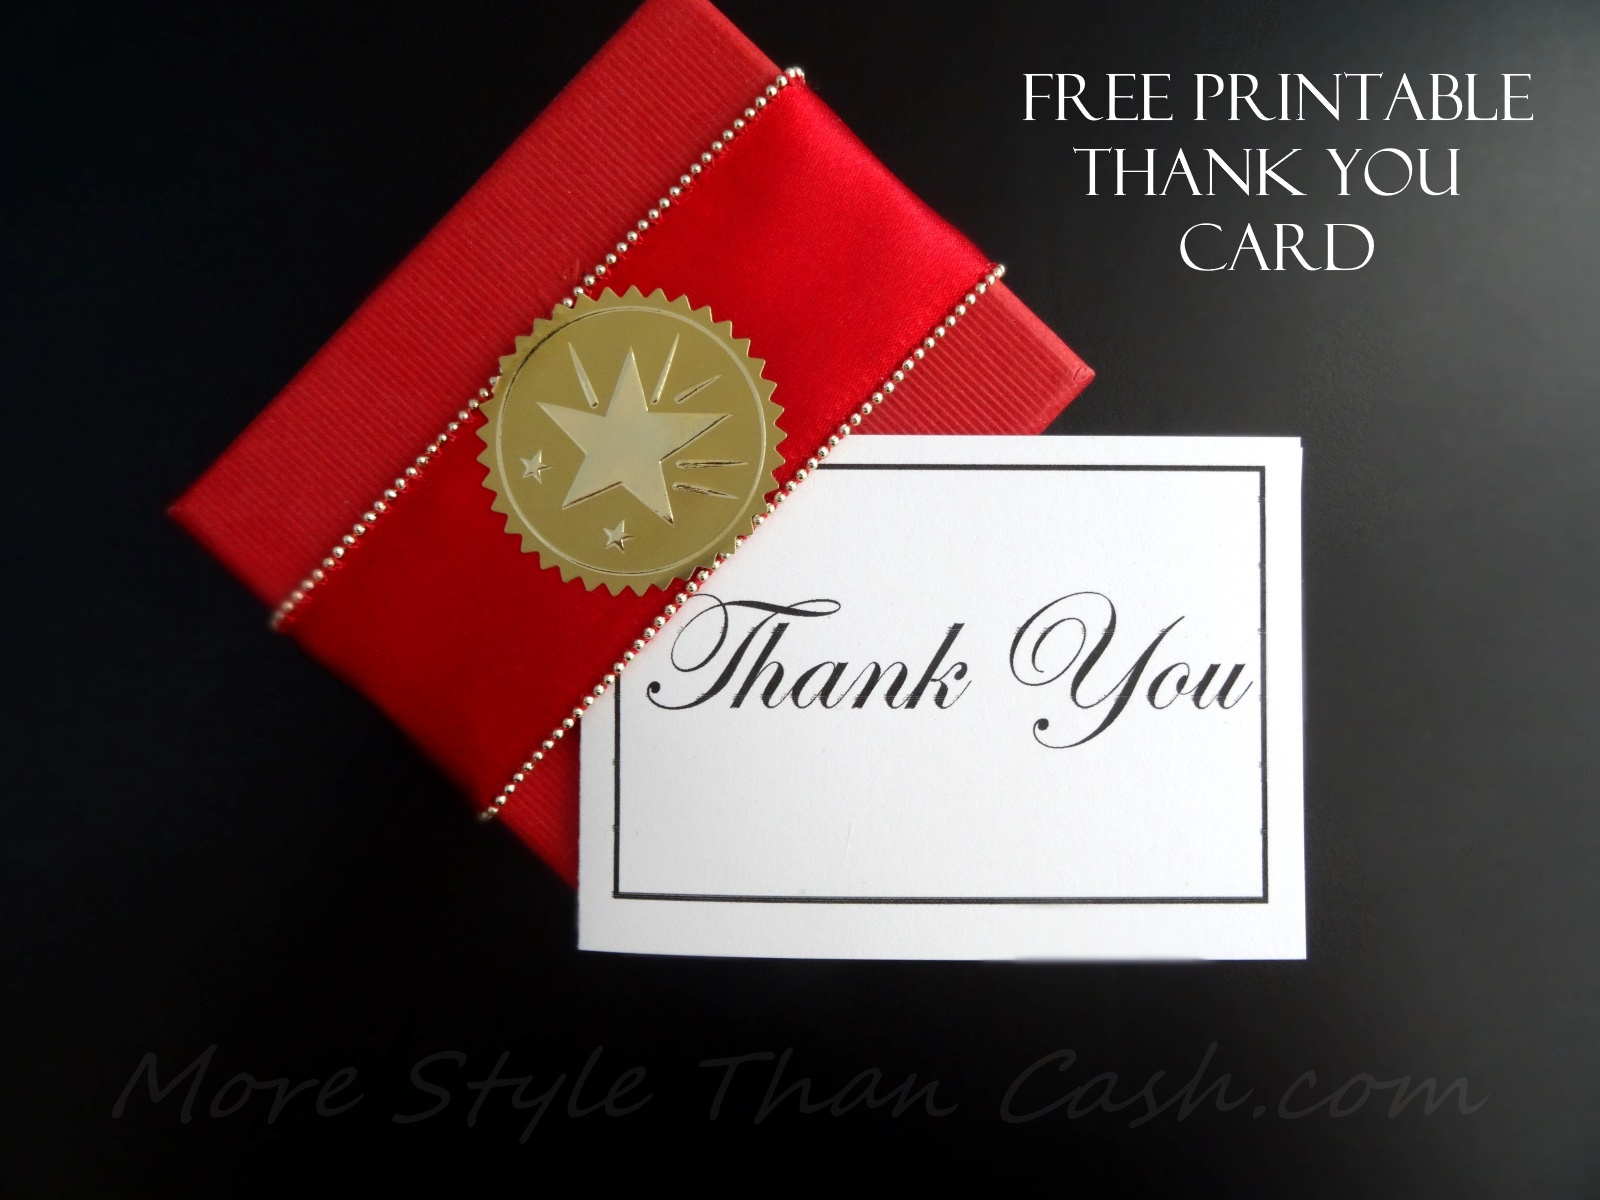 Free Printable Greeting Cards And Tags - Free Printable Enclosure Cards